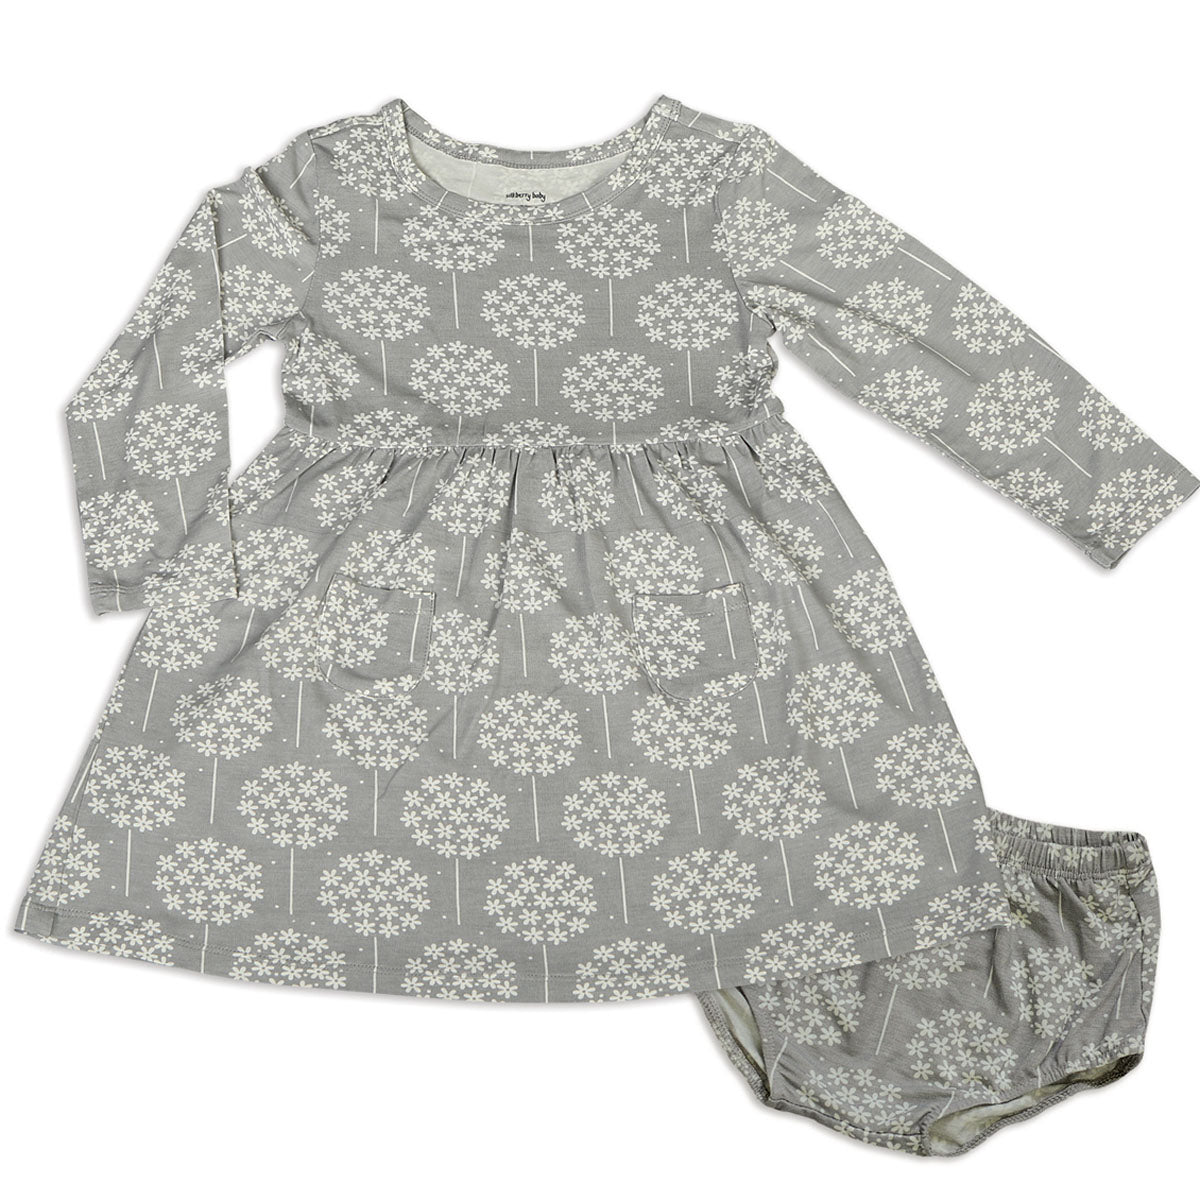 Silkberry Baby Bamboo Dress with Bloomer - Dandelion